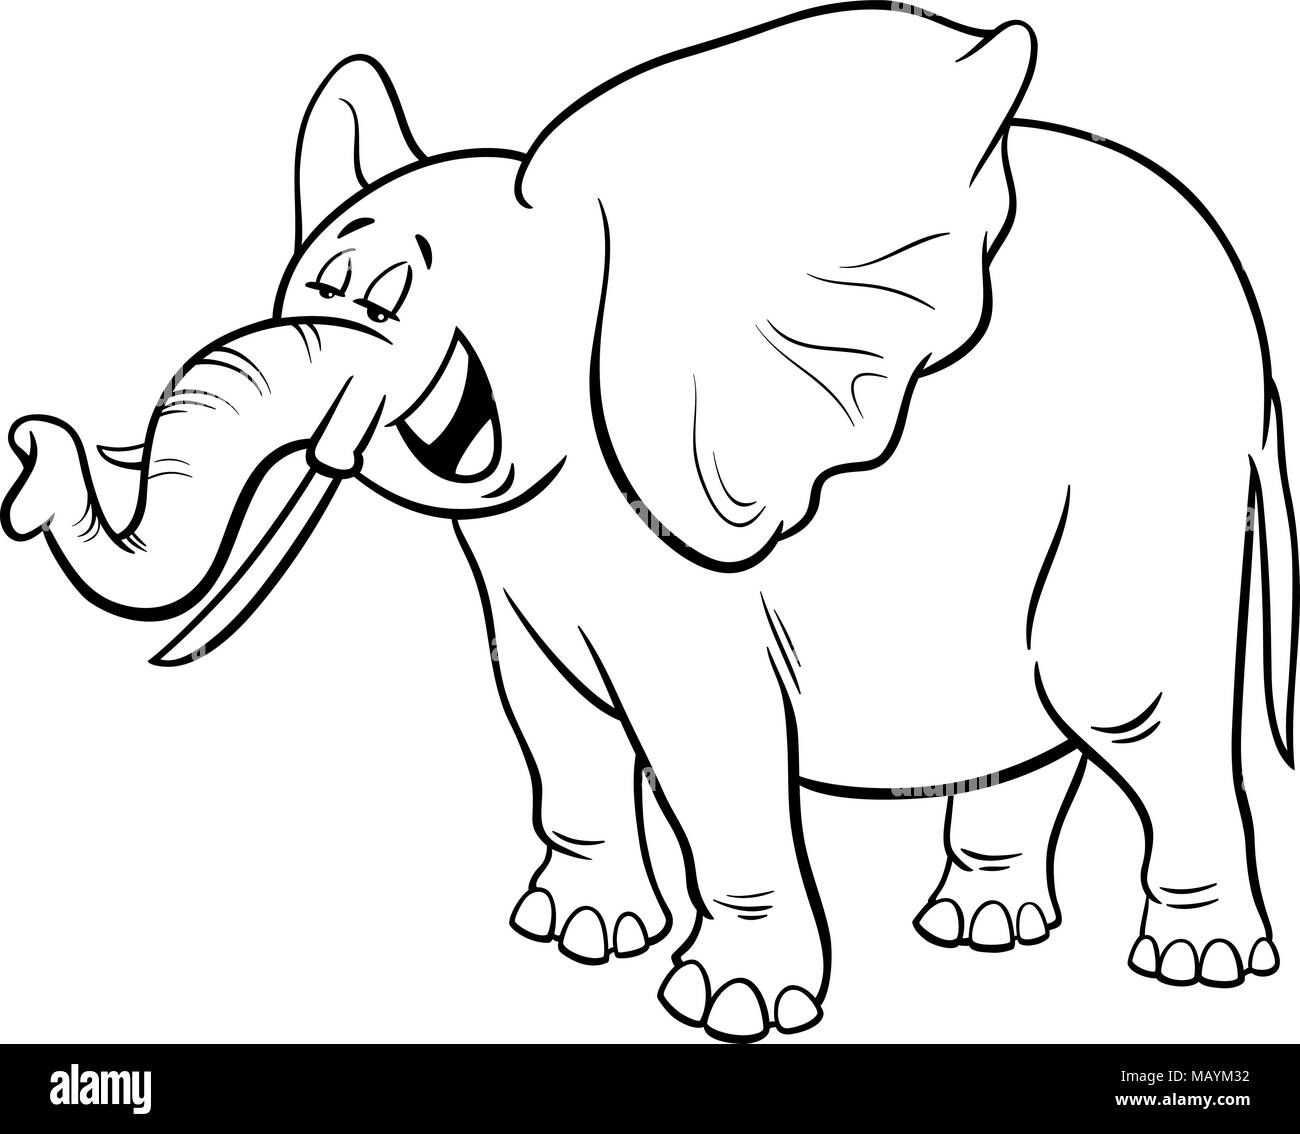 Black and White Cartoon Illustration of Funny Gray African Elephant ...